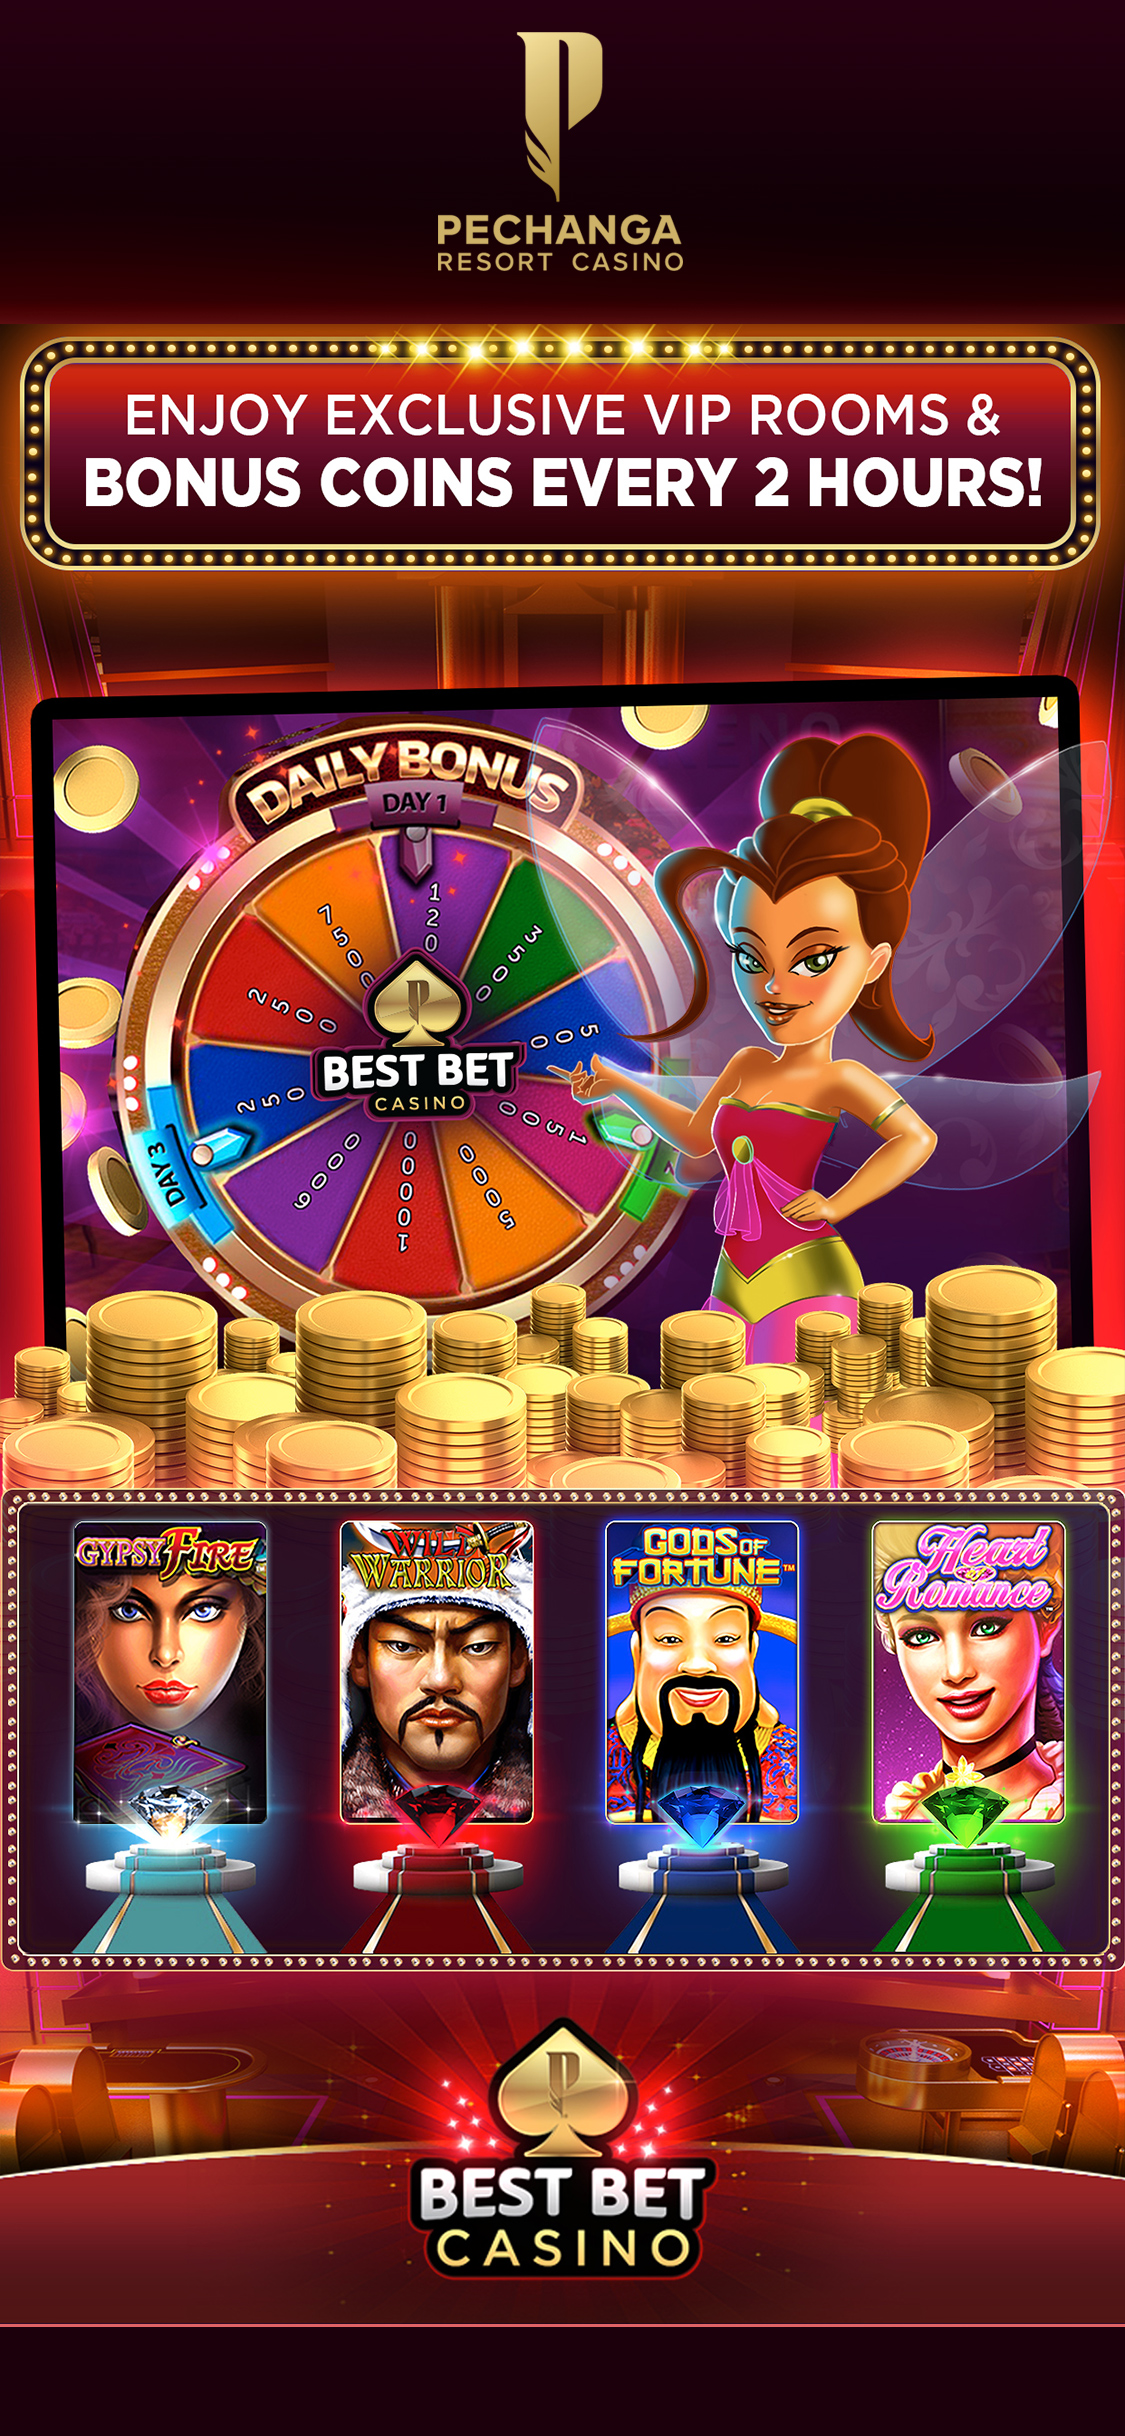 Pechanga's Best Bet Casino